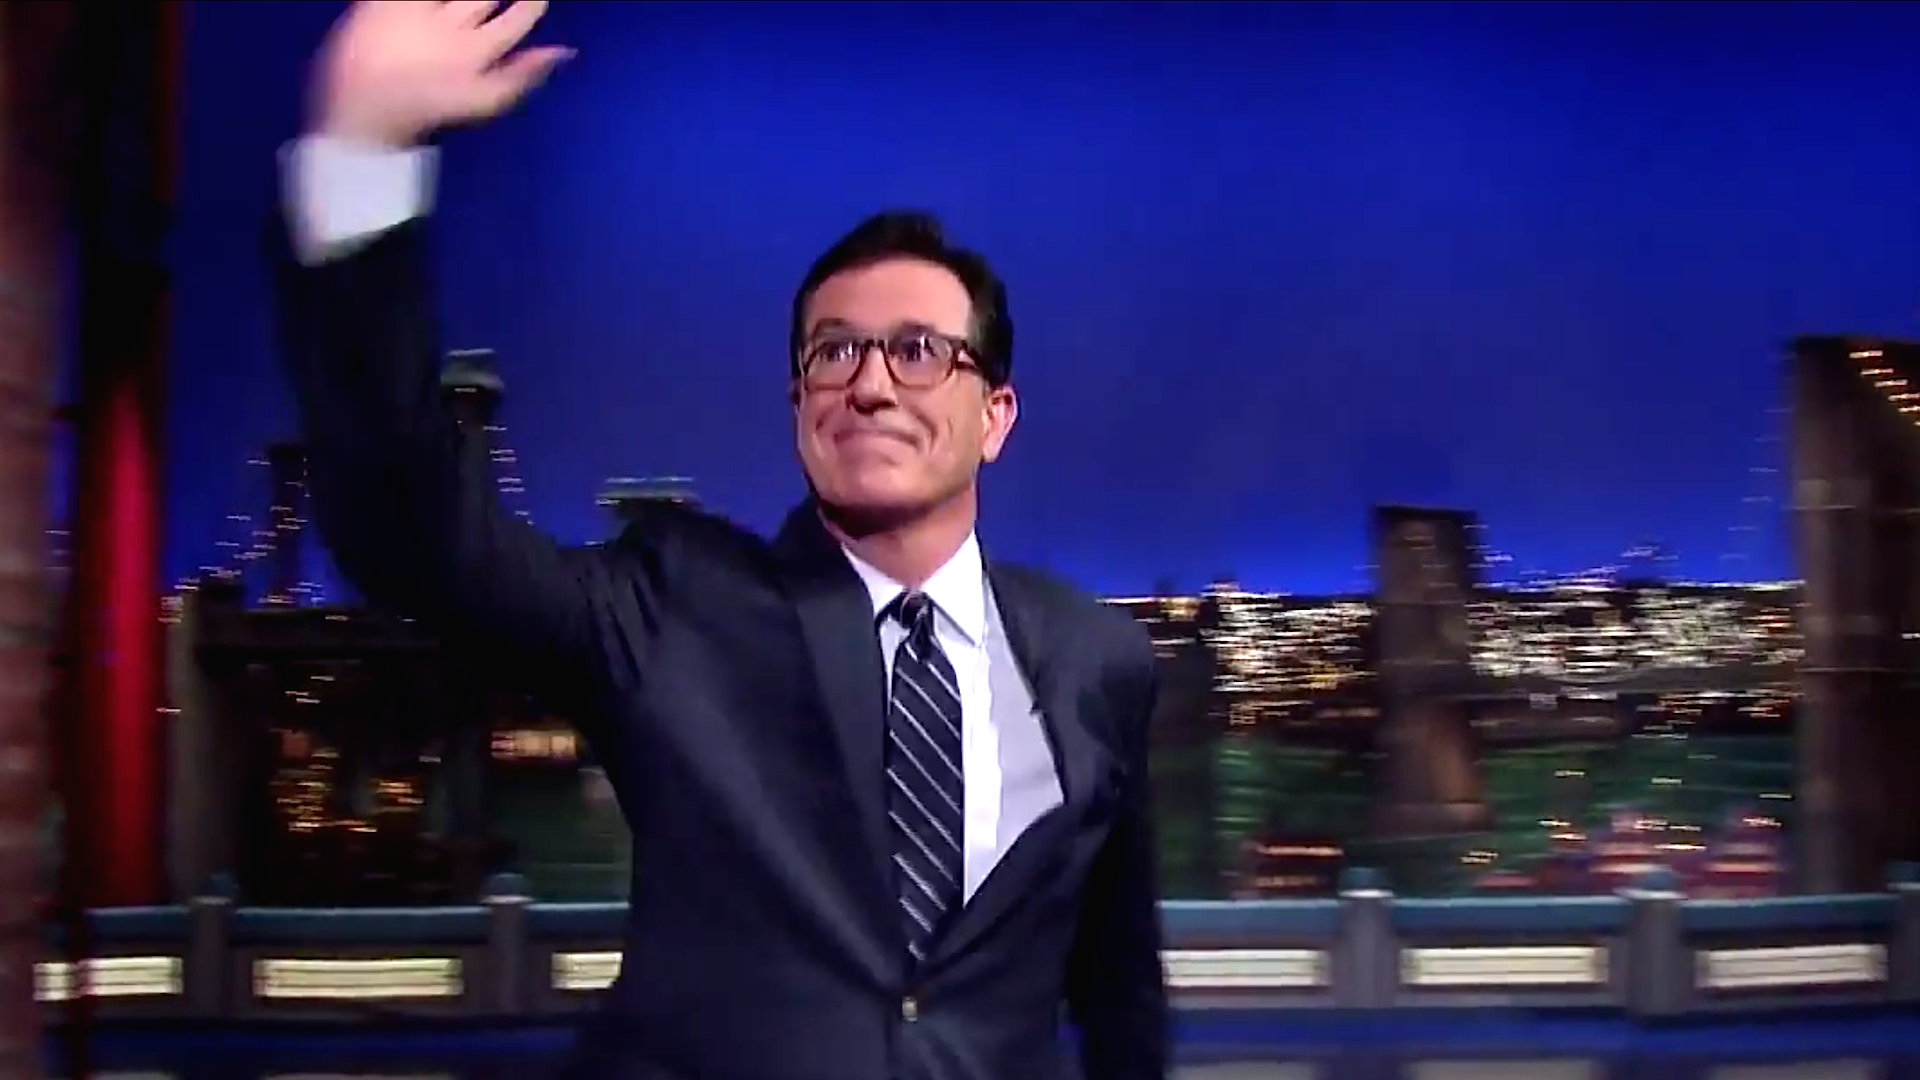 Stephen Colbert Wallpaper 22   1920 X 1080 stmednet 1920x1080